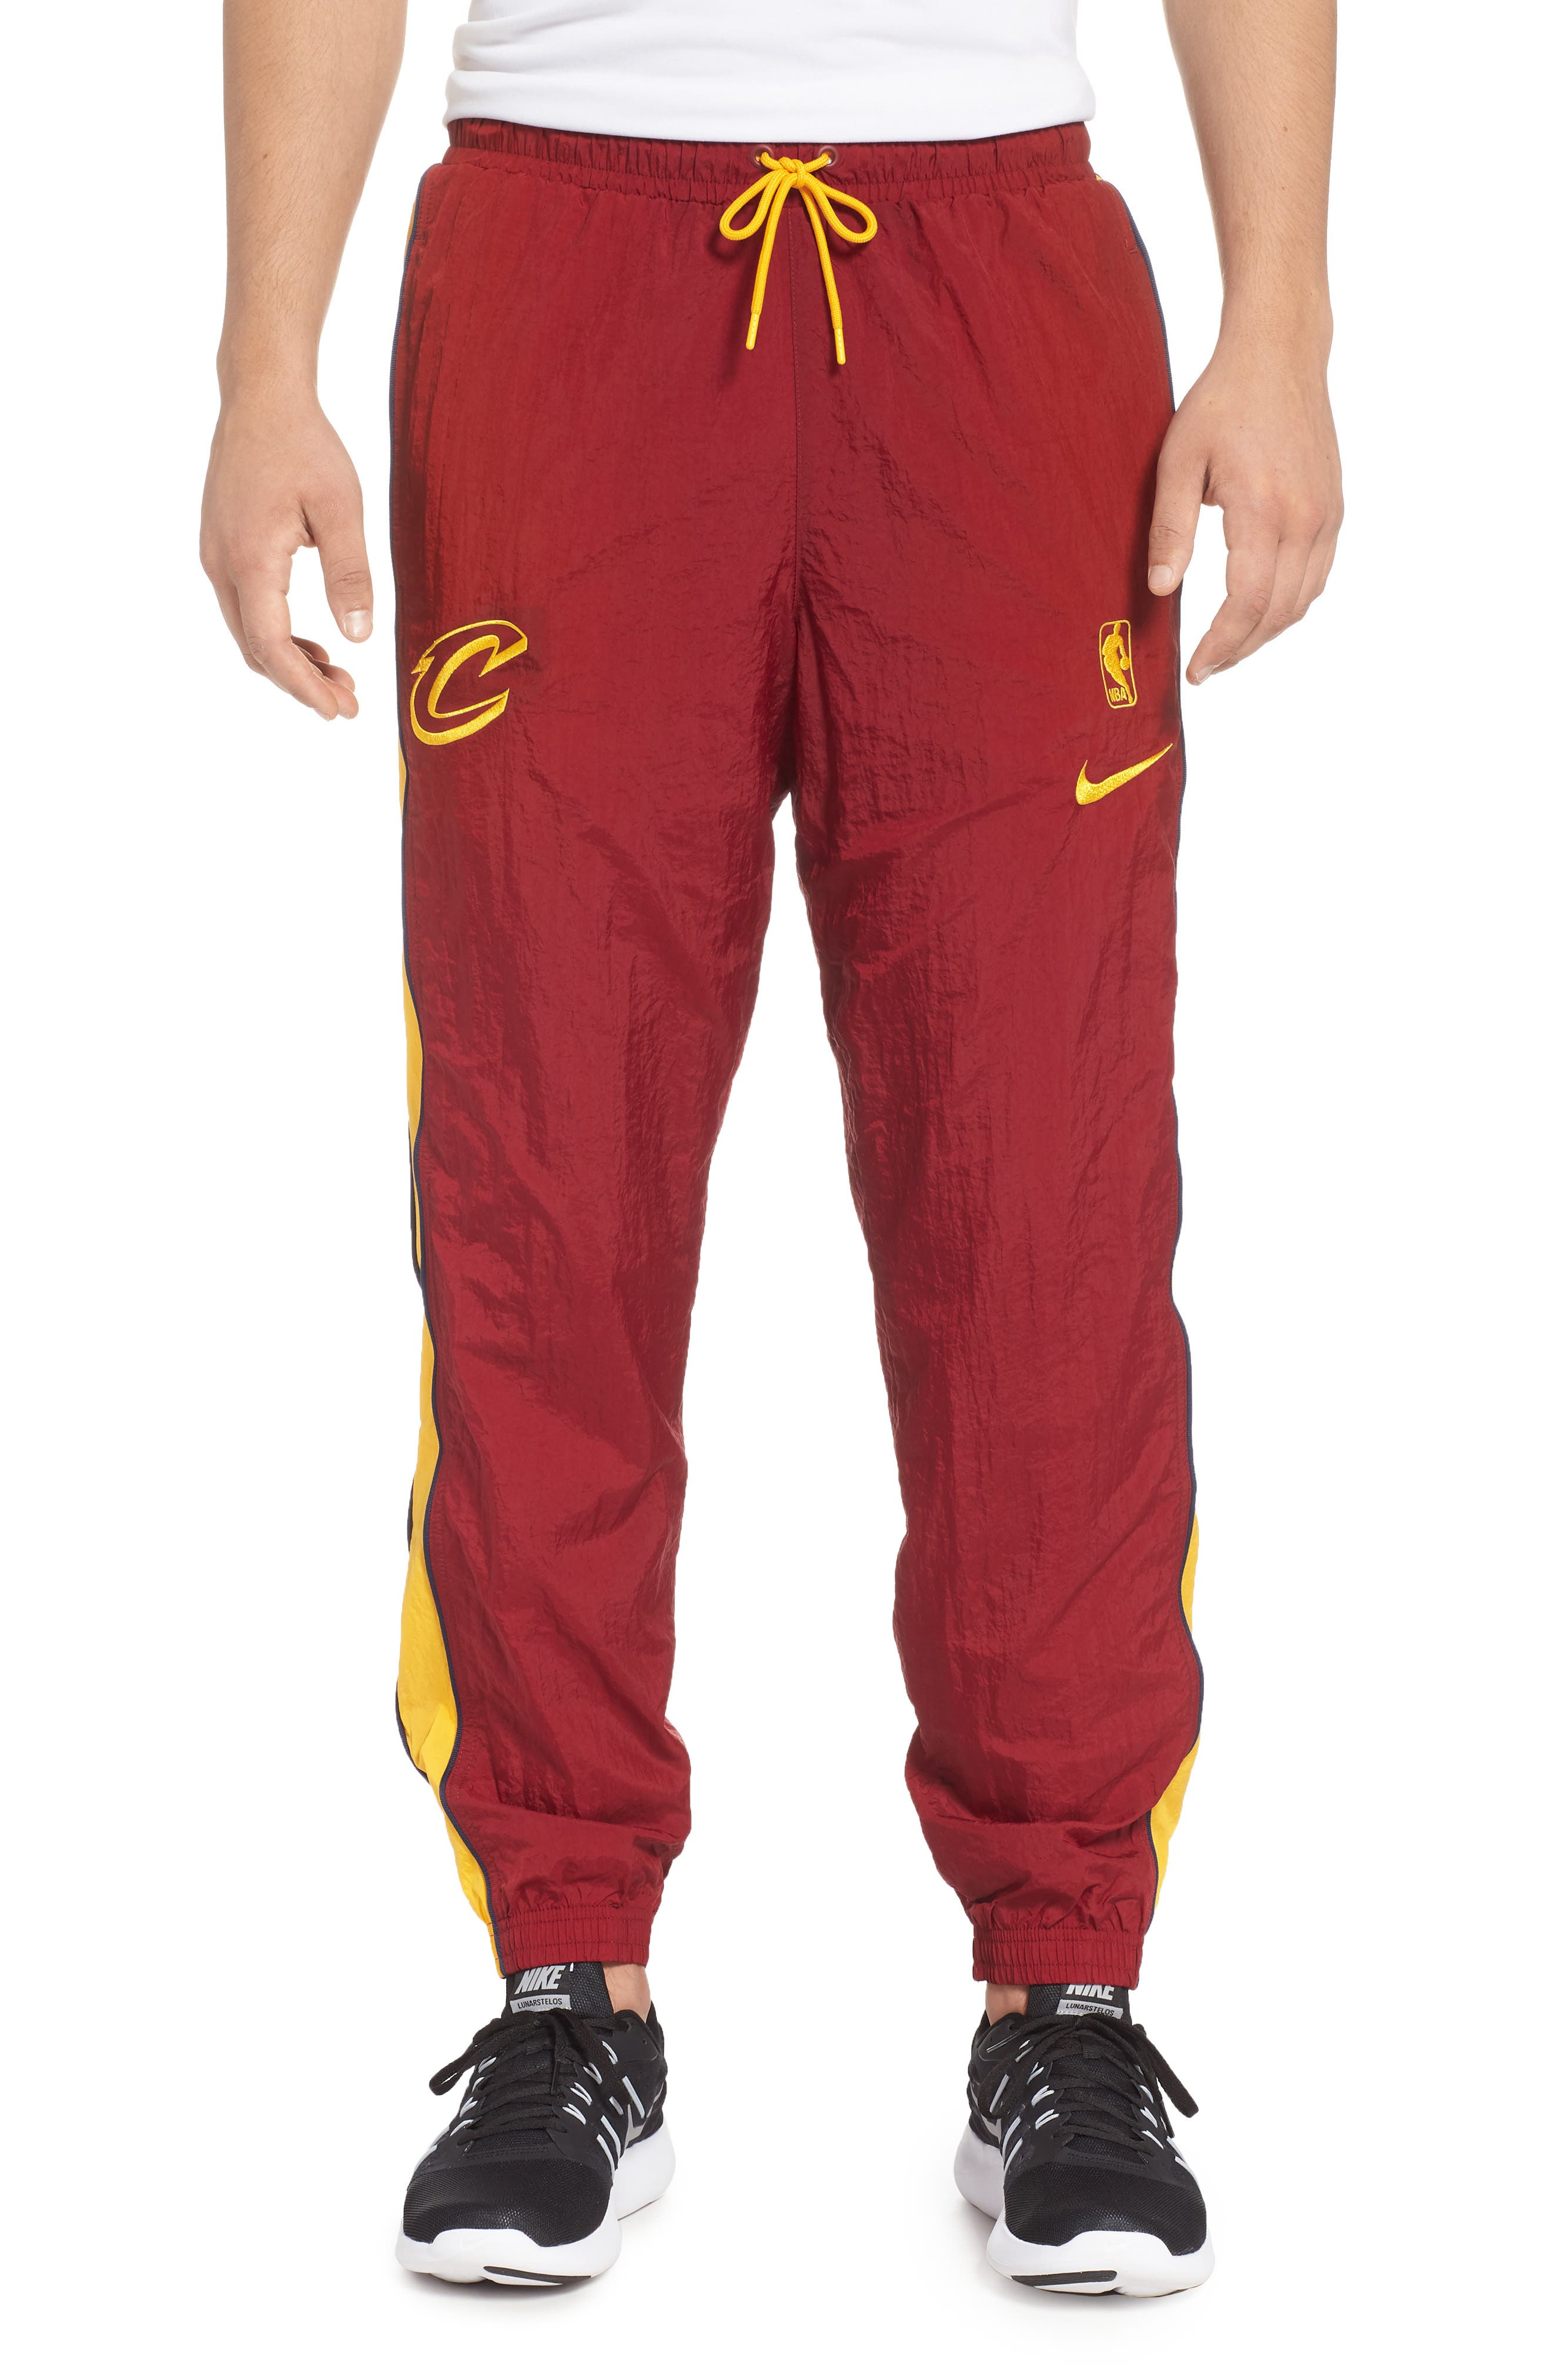 Cleveland Cavaliers Tracksuit Pants,                             Main thumbnail 1, color,                             TEAM RED/ UNIVERSITY GOLD